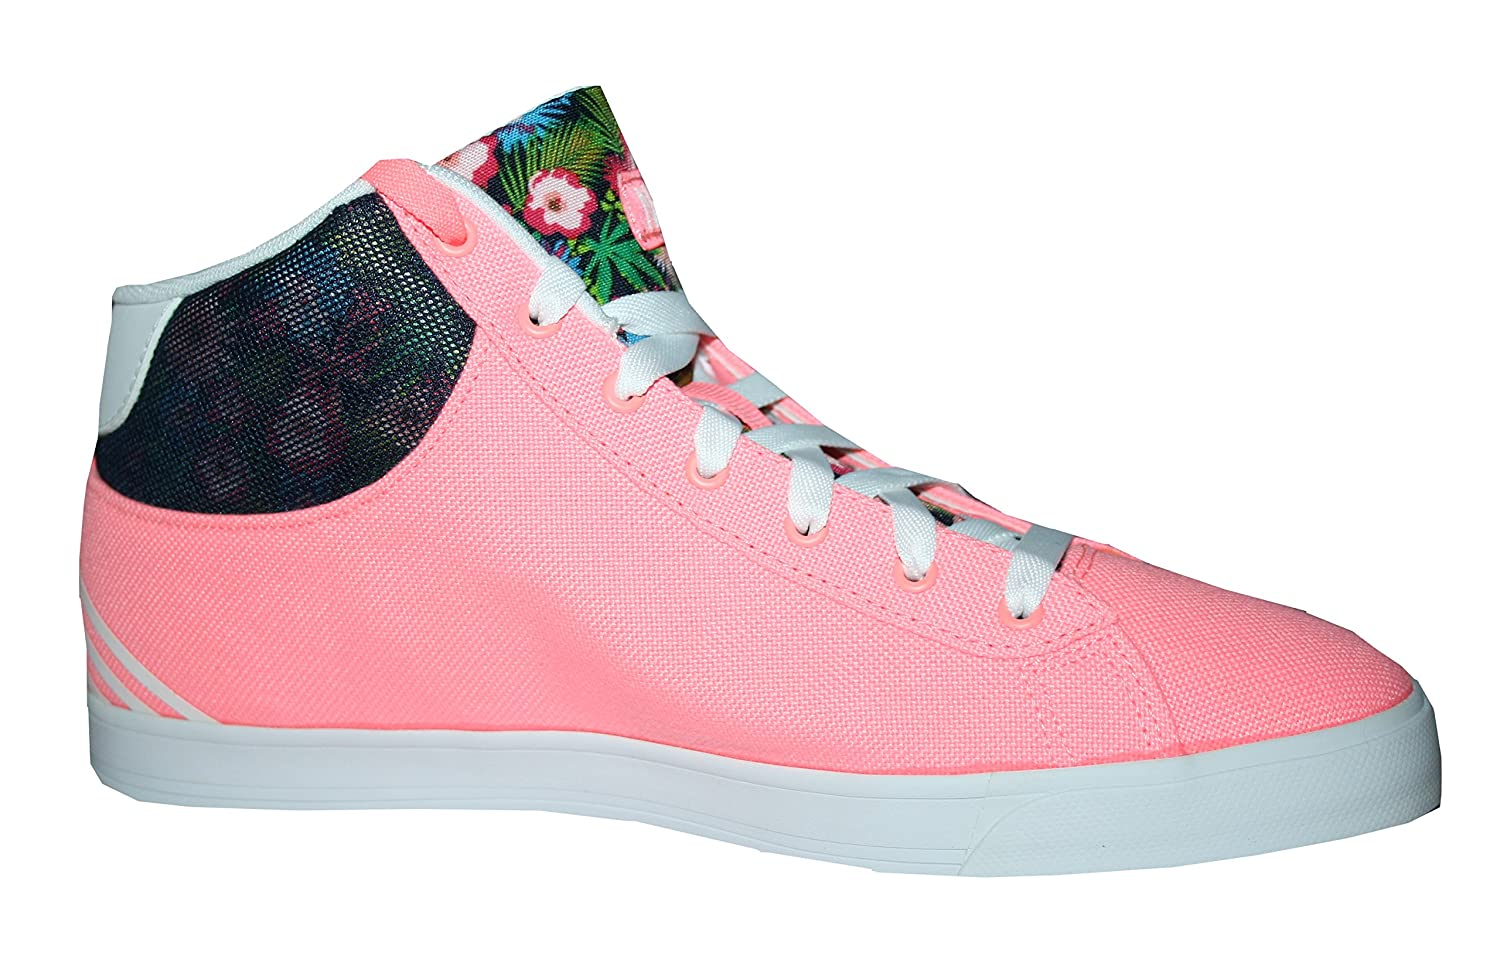 Adidas - Hi-Tops - Daily Daily Daily Mid Schuh - Light Flash rot - 40 b5a536